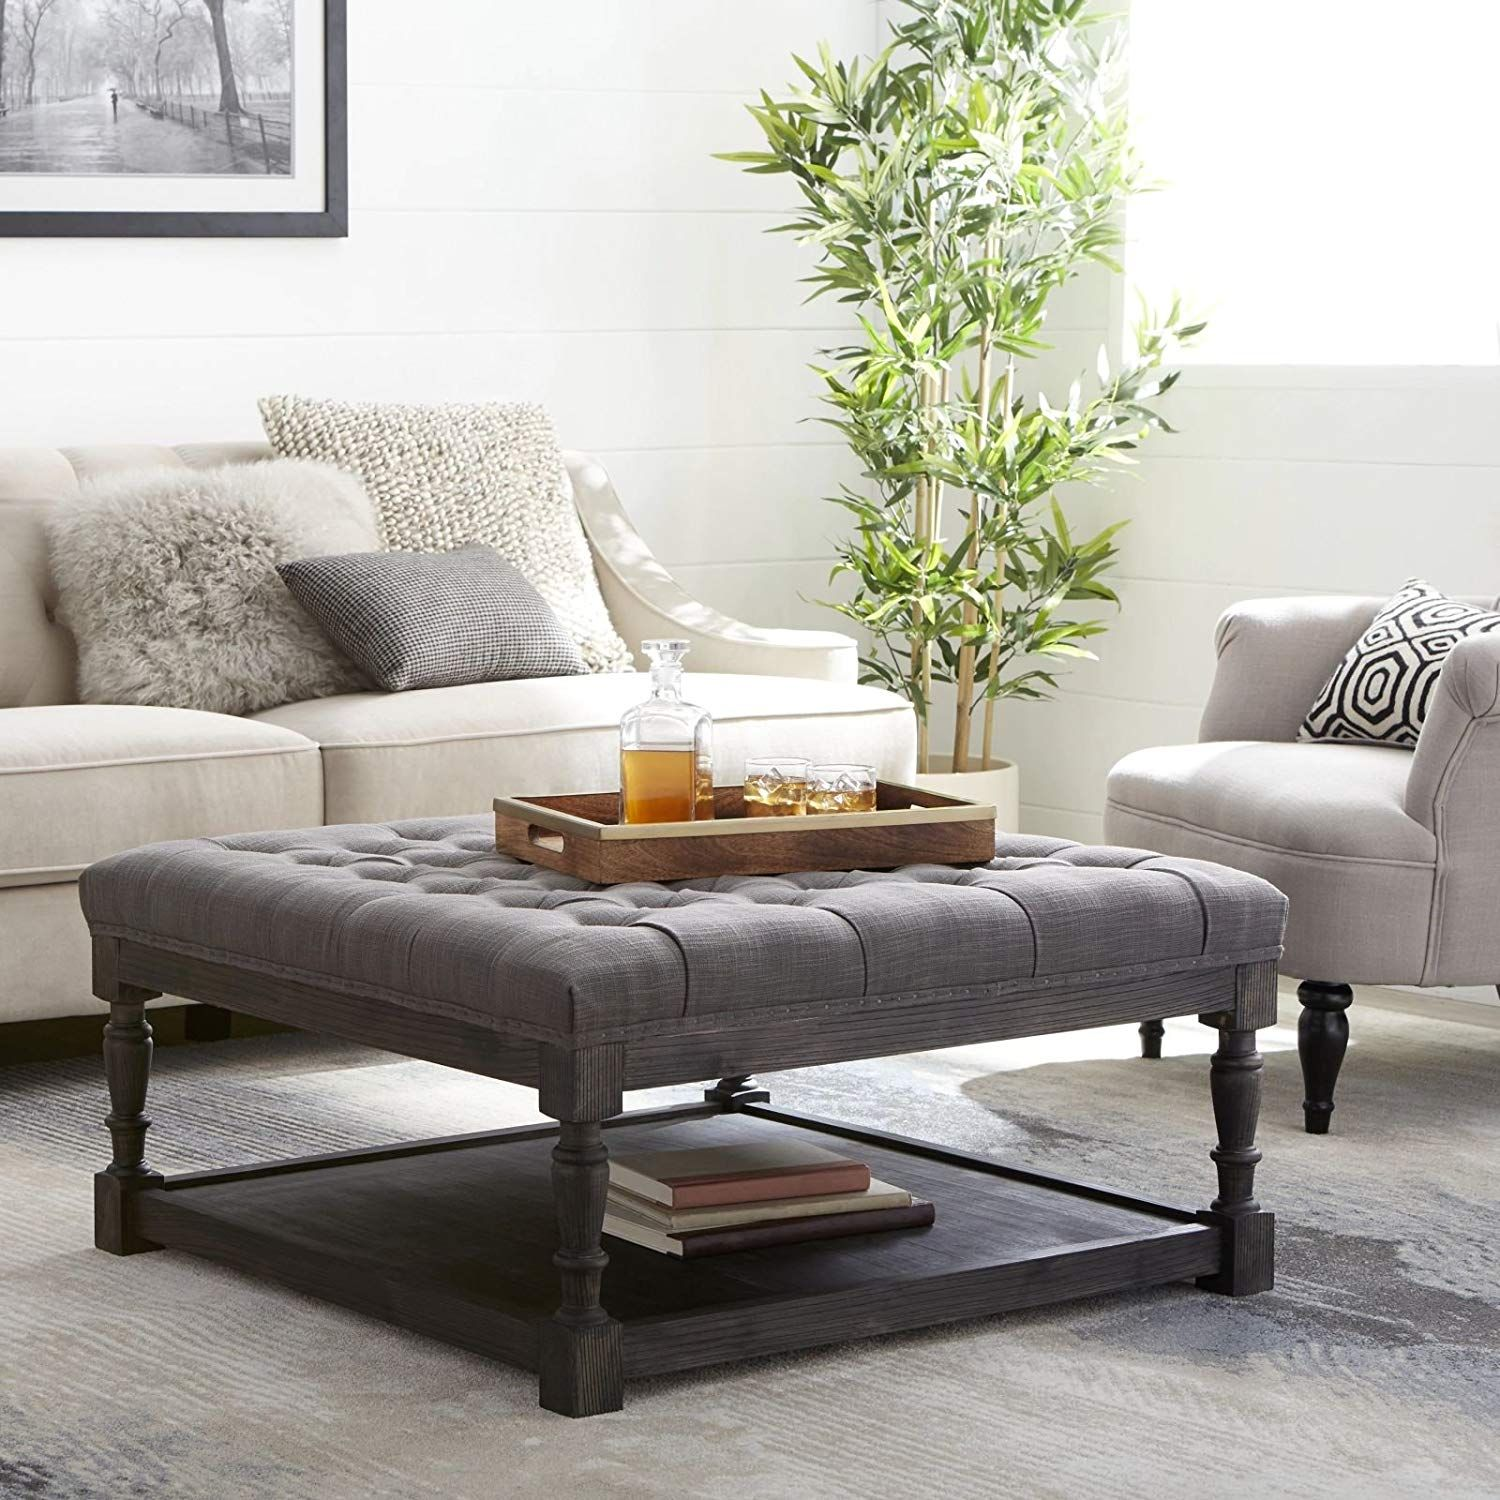 Tufted Ottoman Coffee Table Centerpiece Suitable For Living Rooms Large Storage Bench Provides C Tufted Ottoman Coffee Table Ottoman Coffee Table Coffee Table